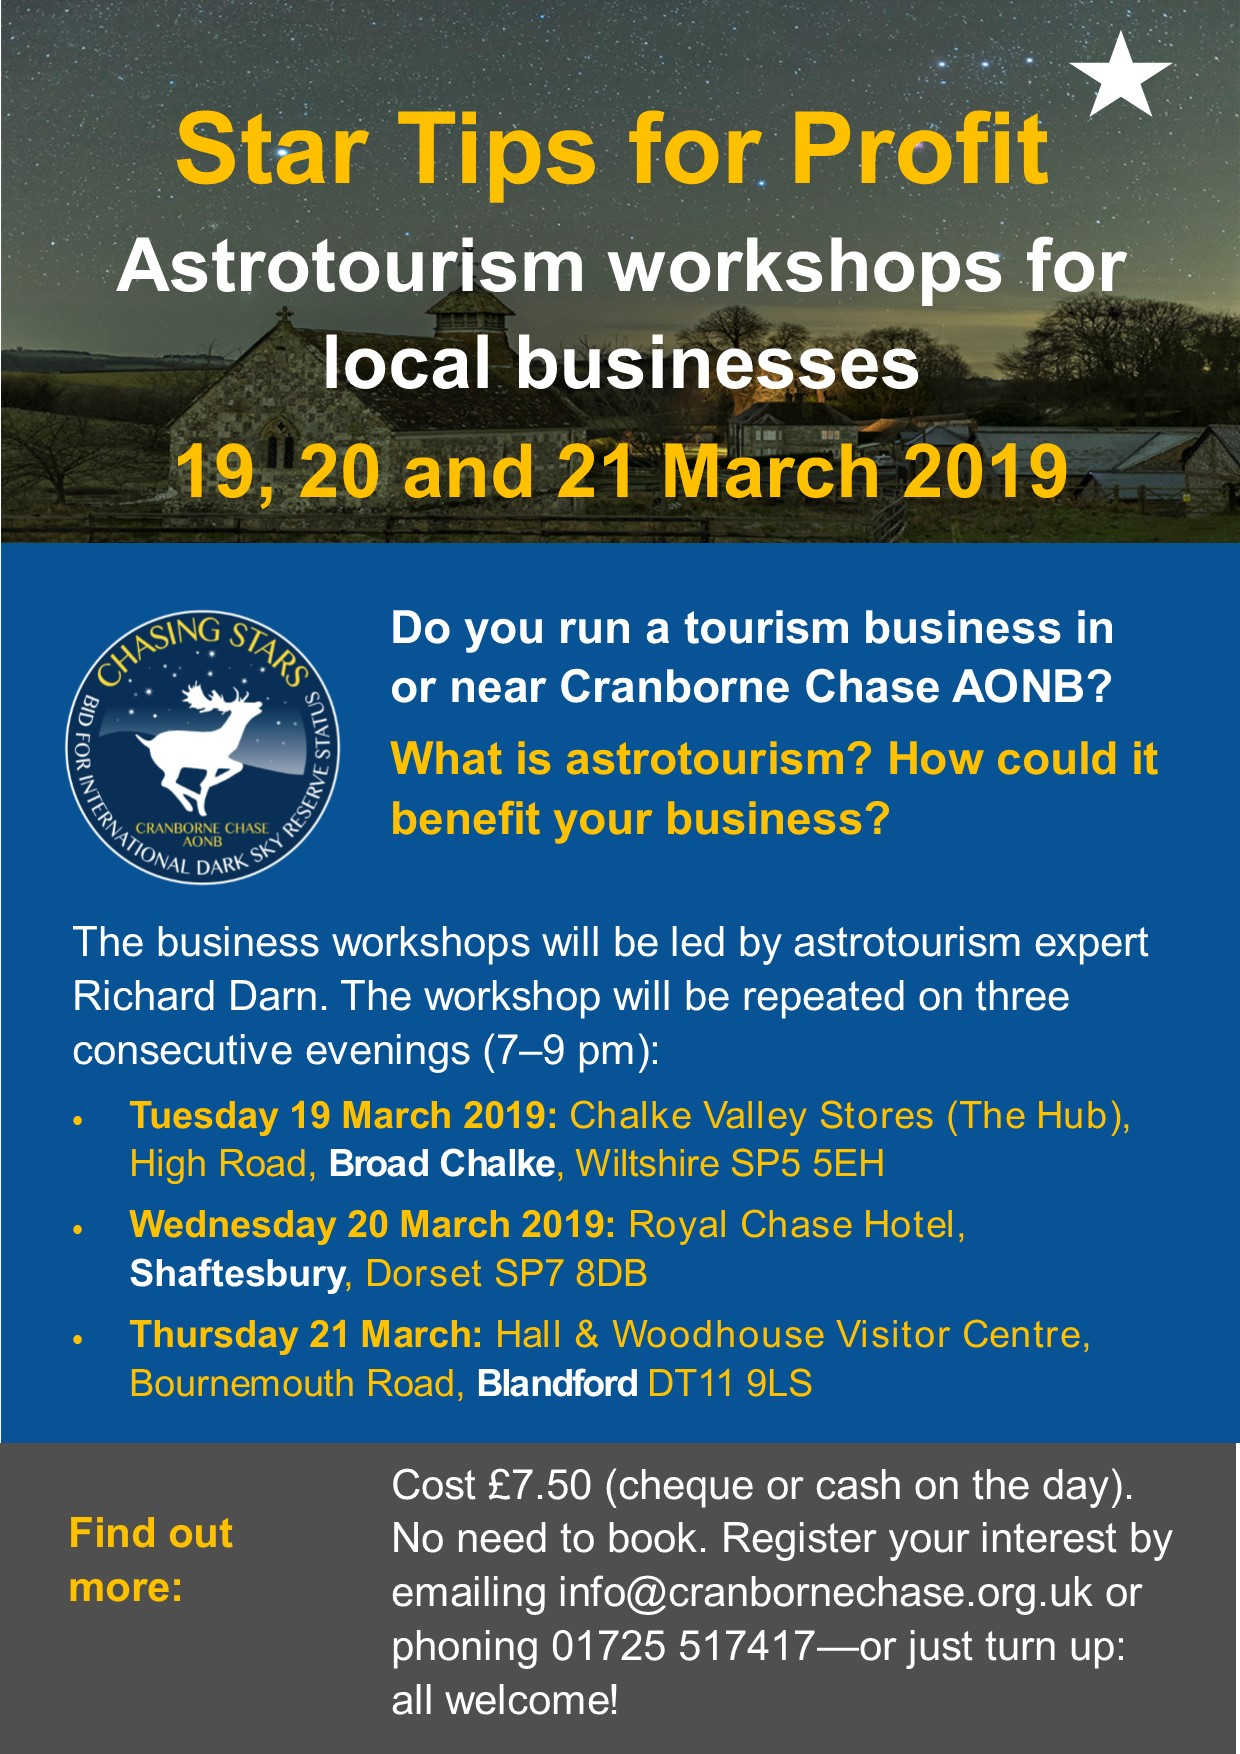 Astrotourism business workshops